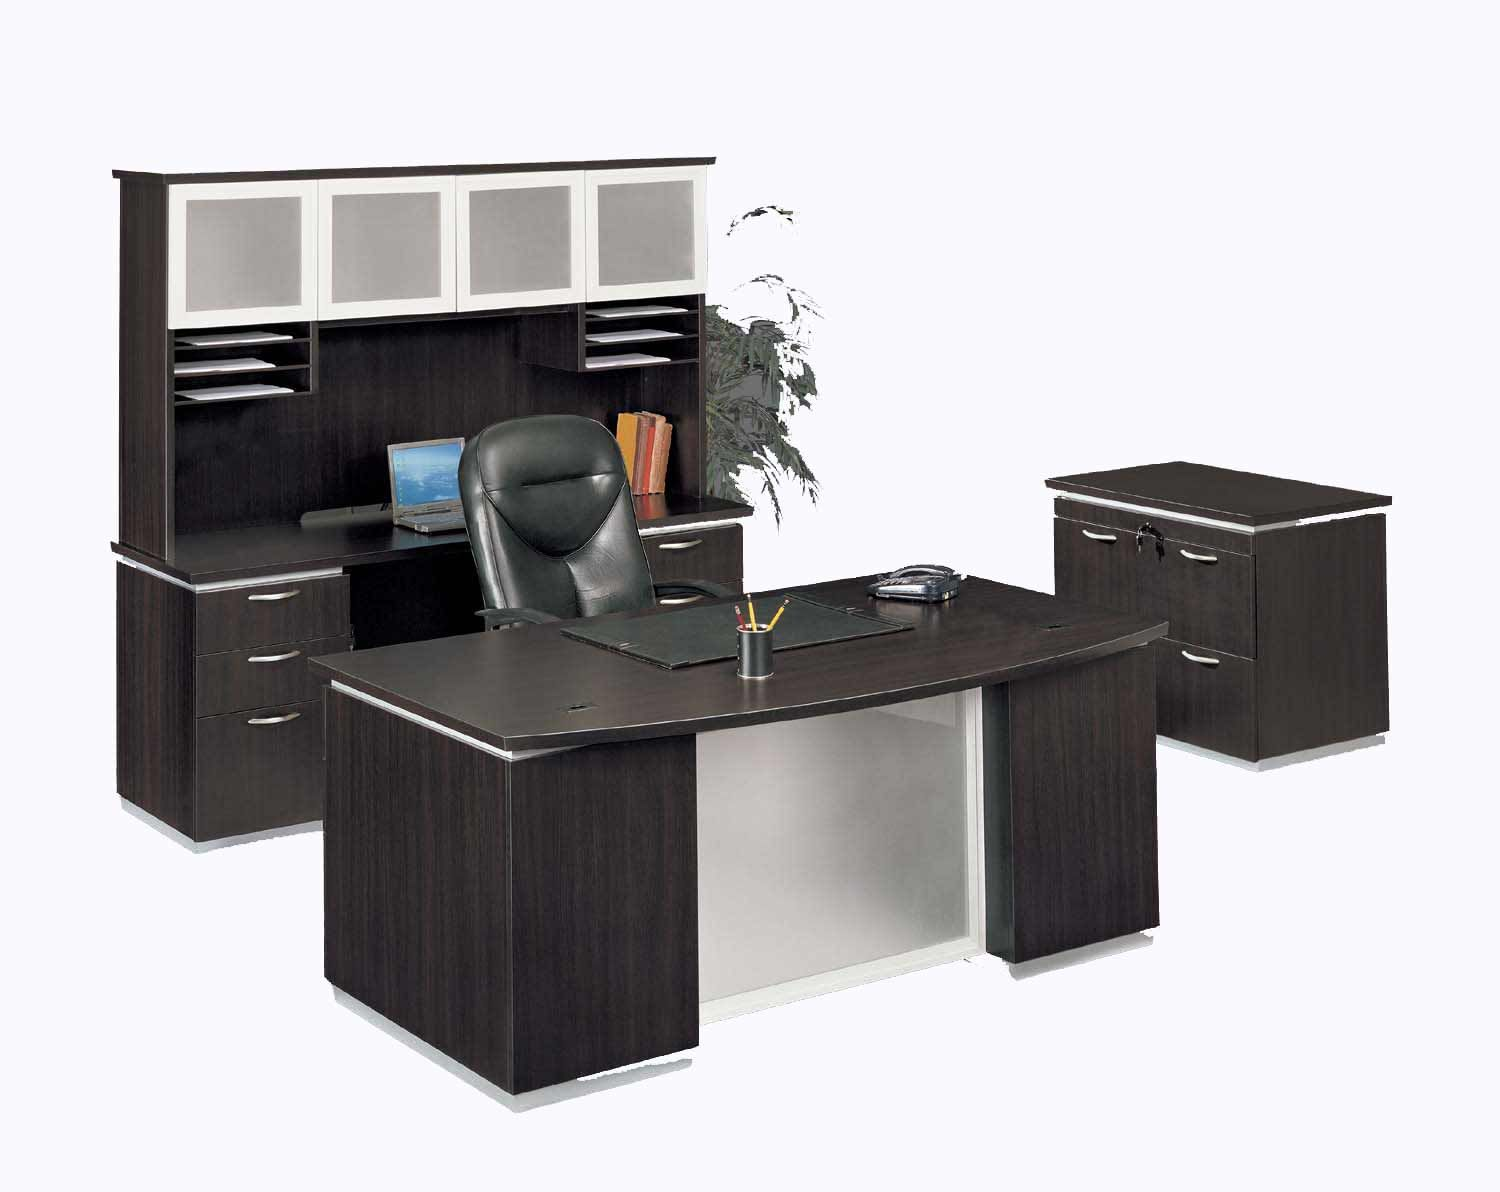 Executive Black Home Office Furniture Table Office Desk For Sale Home Office Desks Wood Furniture Store